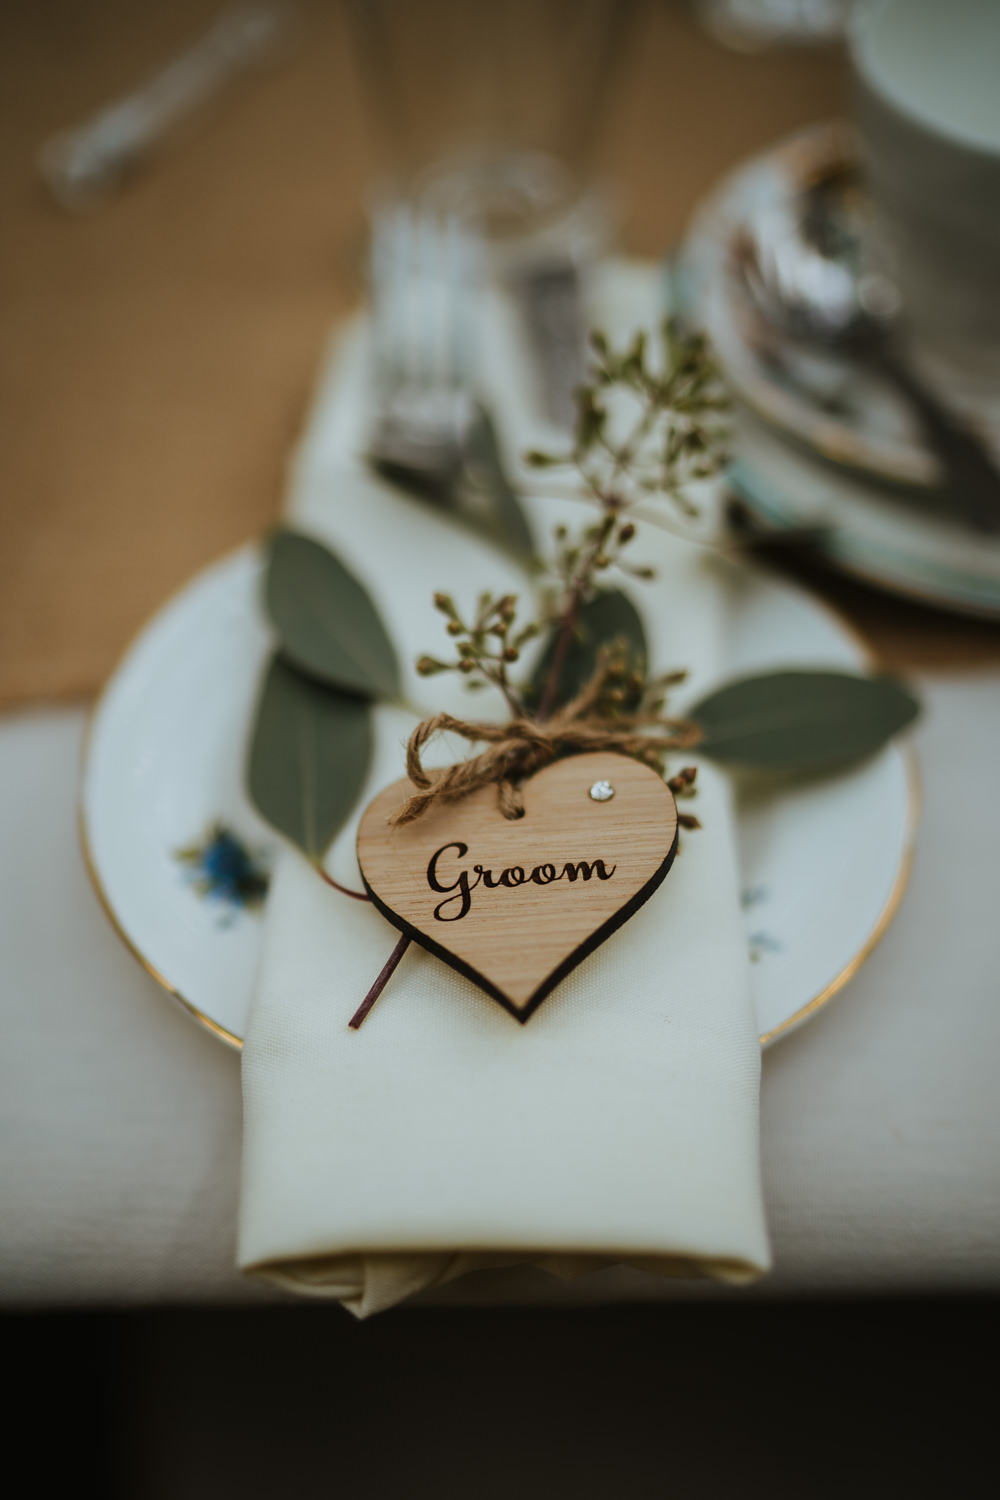 Heart Wooden Place Name Naplin Place Setting Micro Wedding Nicola Dawson Photography